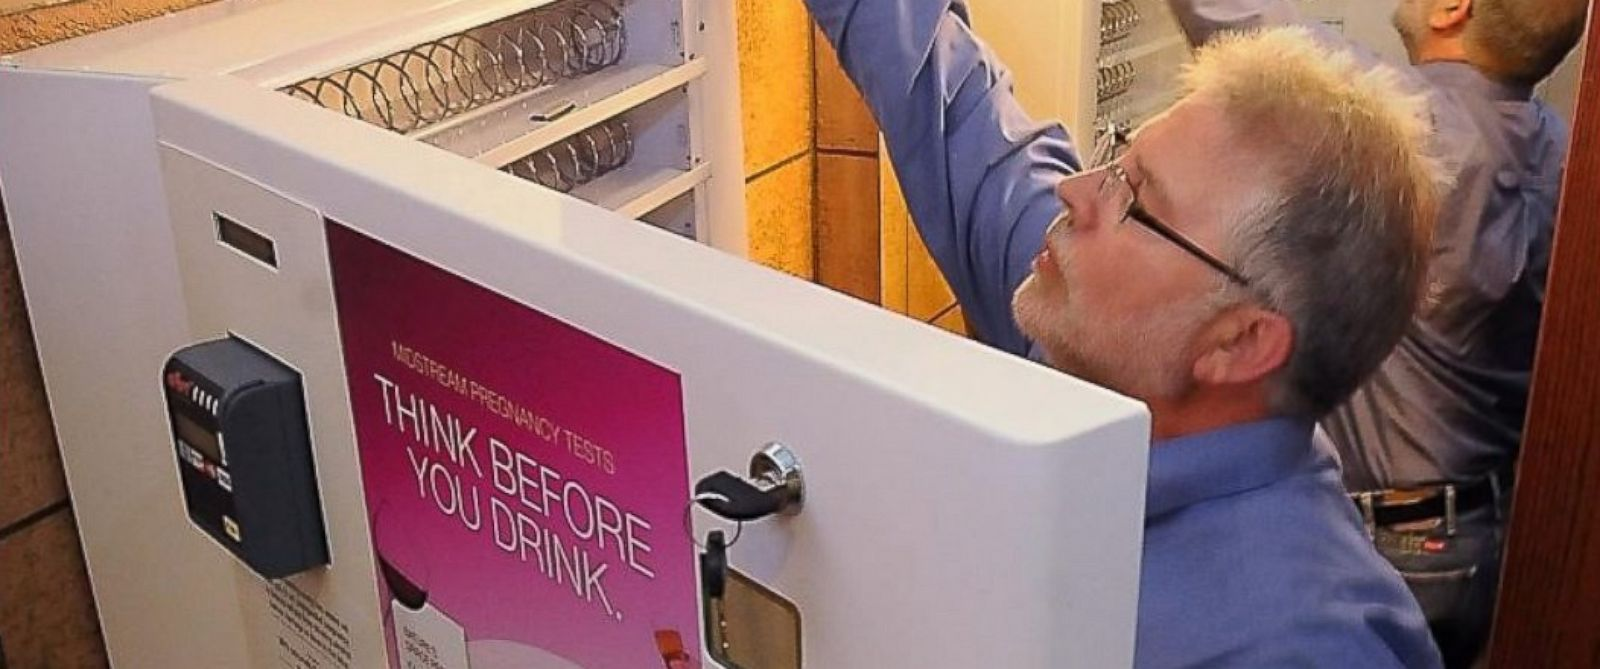 PHOTO: Jody Allen Crowe, executive director of Healthy Brains for Children, installed the first-of-its-kind pregnancy test dispenser in the womens restroom at Pub 500 in Mankato, Minn. in 2012.